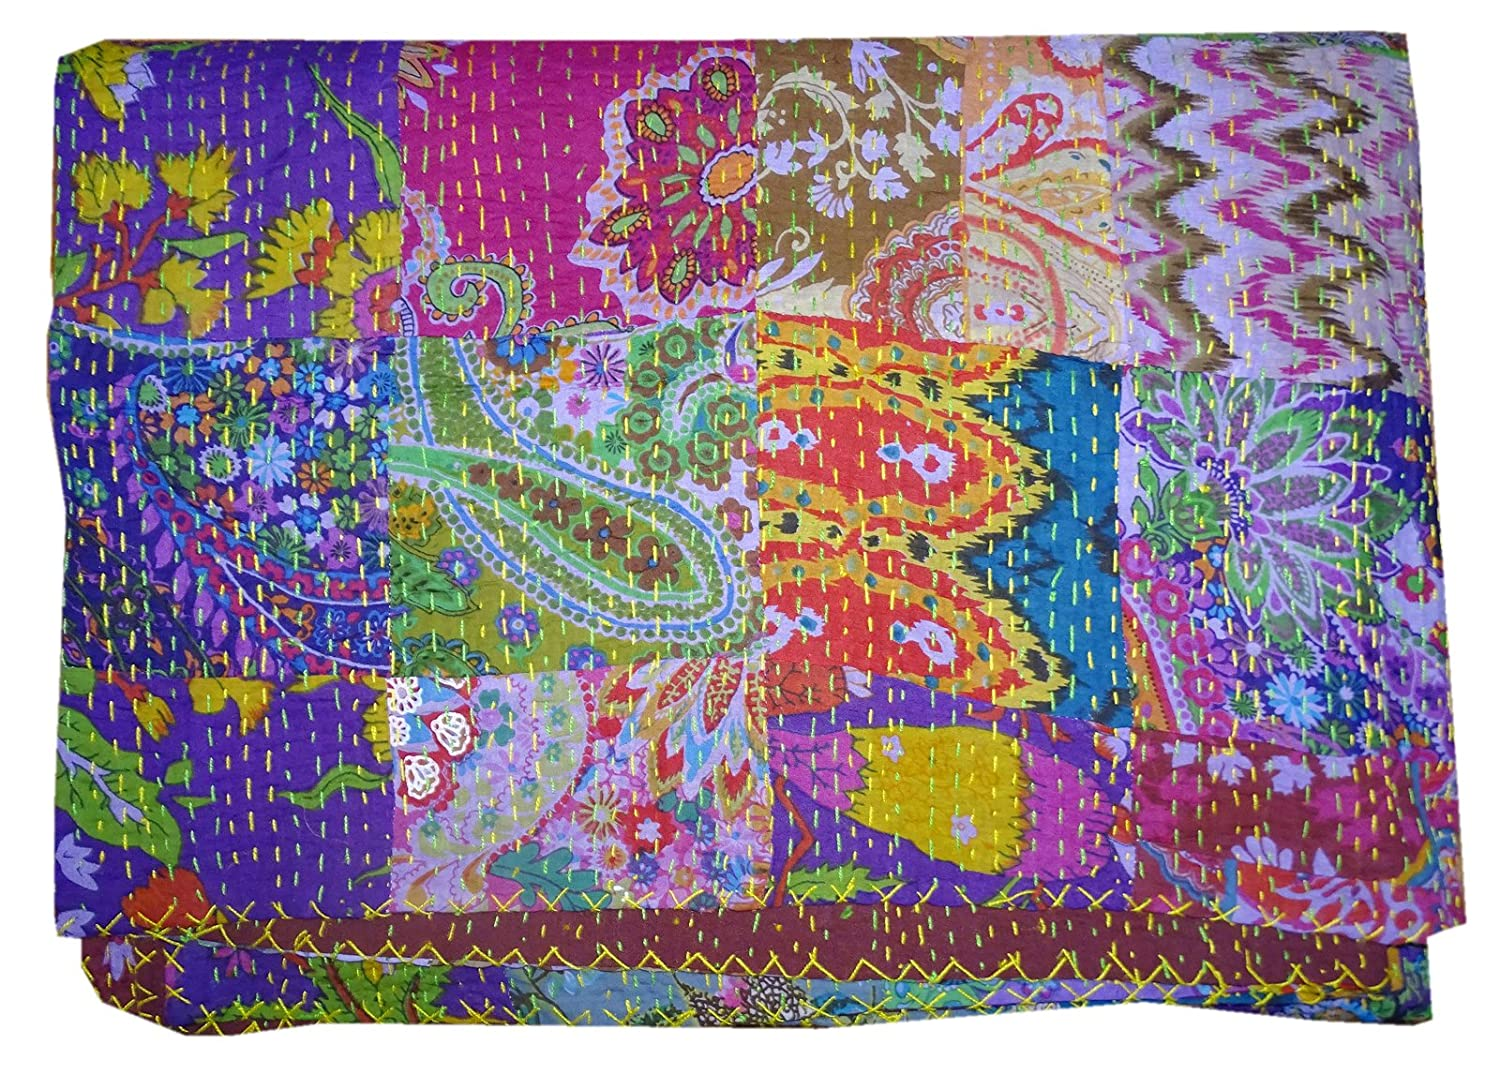 Bhavya International 100% Cotton Ethnic Handmade Kantha Blanket Gudari Throw Decor Hippie King Size Quilt Ralli Patchwork Bedspread